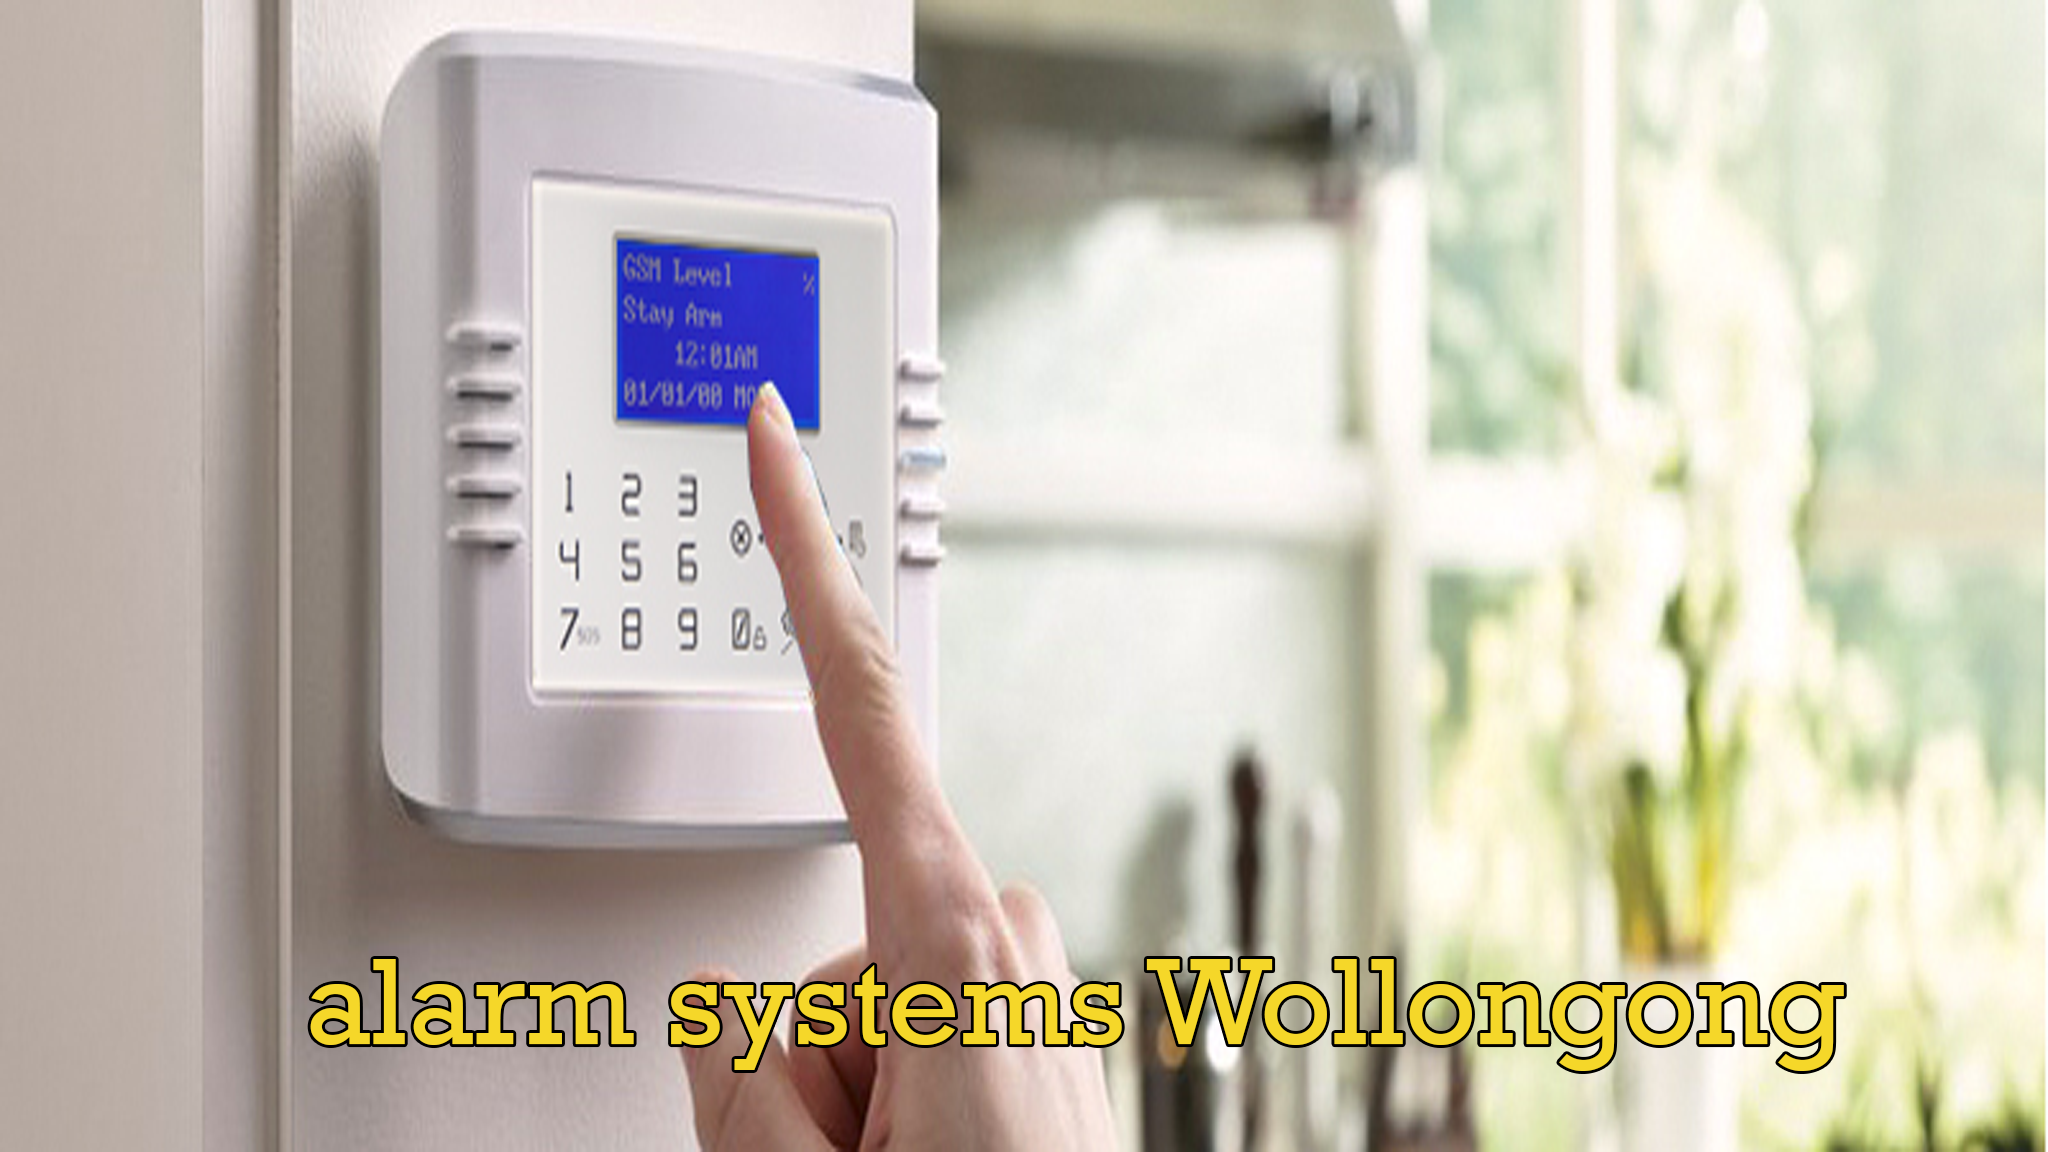 Https://allroundelectrical.com.au/outdoor And Pool Lighting Wollongong For  Home Security/   Set Up All Sorts Of New And Innovative Alarm Systems  Wollongong ...